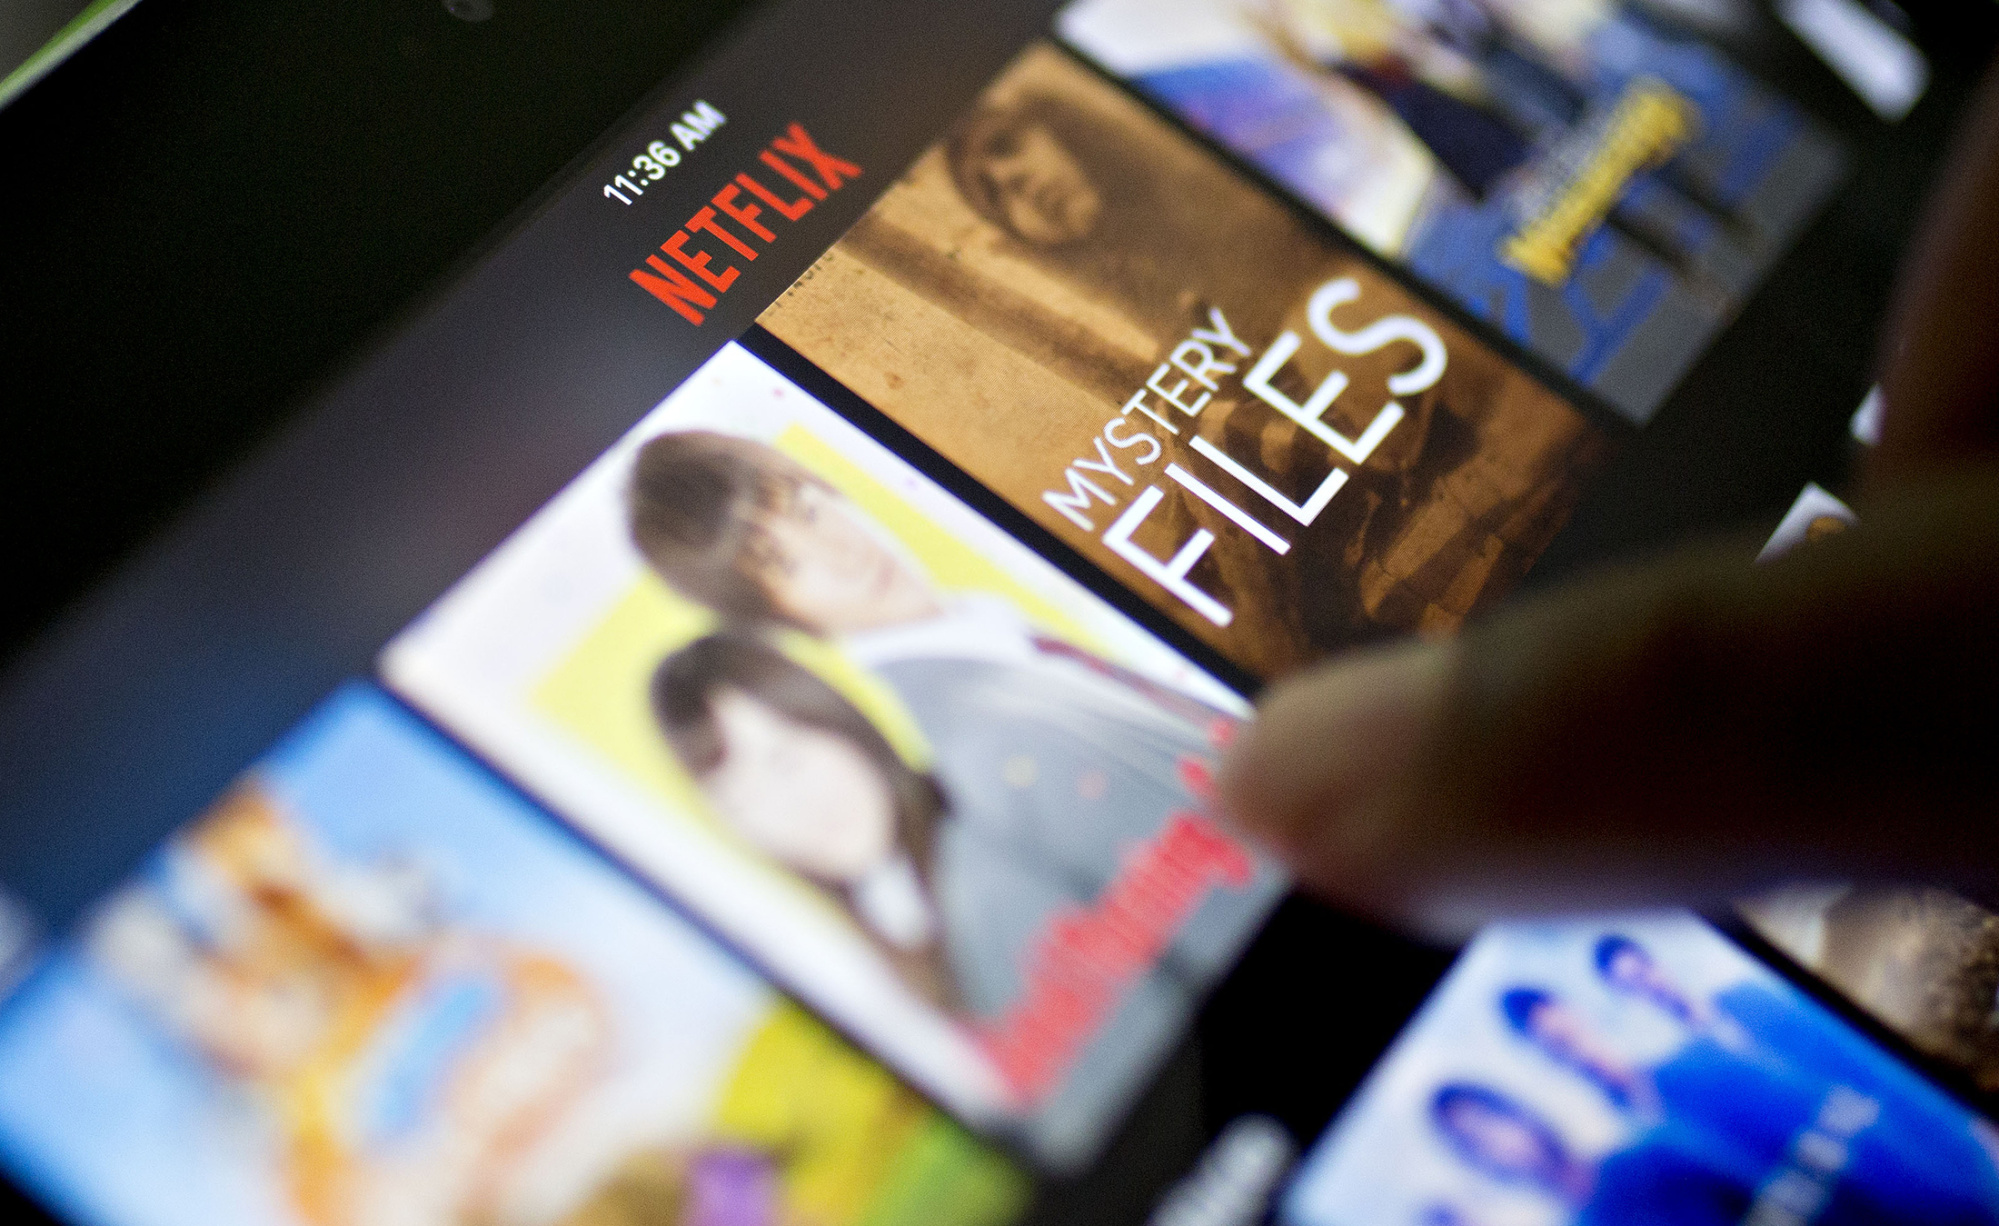 Netflix's U S  Price Increase Makes Other Countries Look Cheap